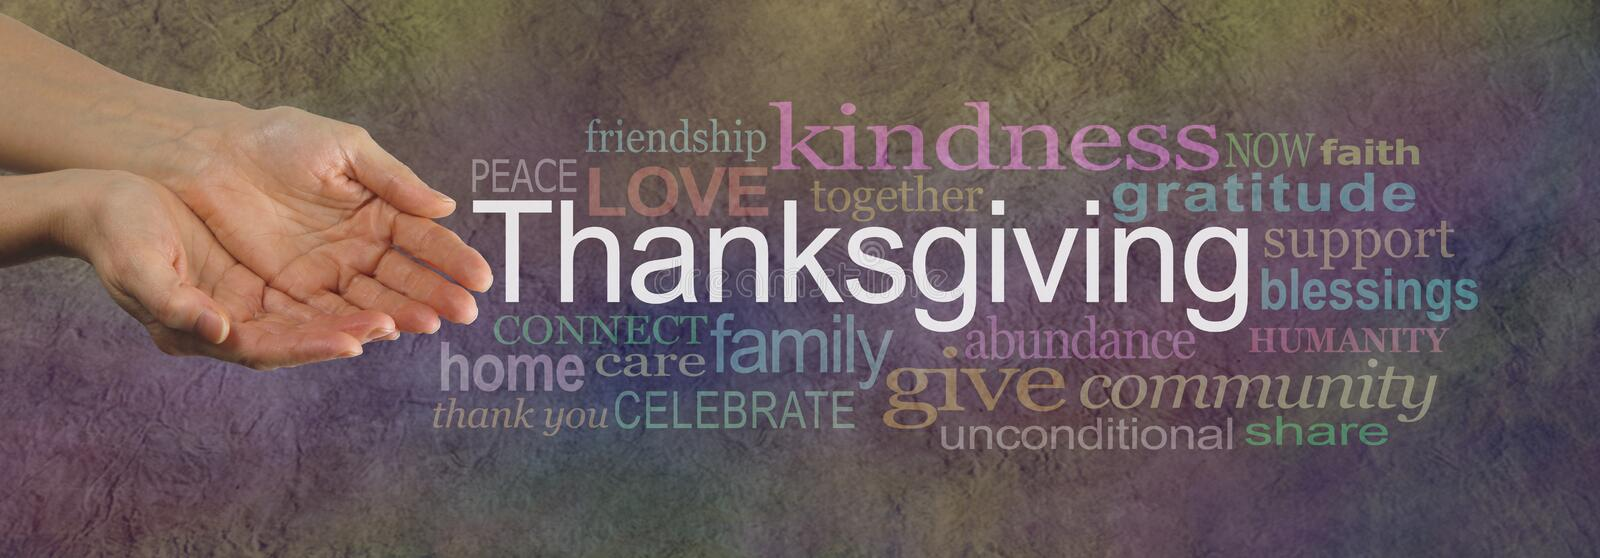 Share your Love at Thanksgiving stock photo